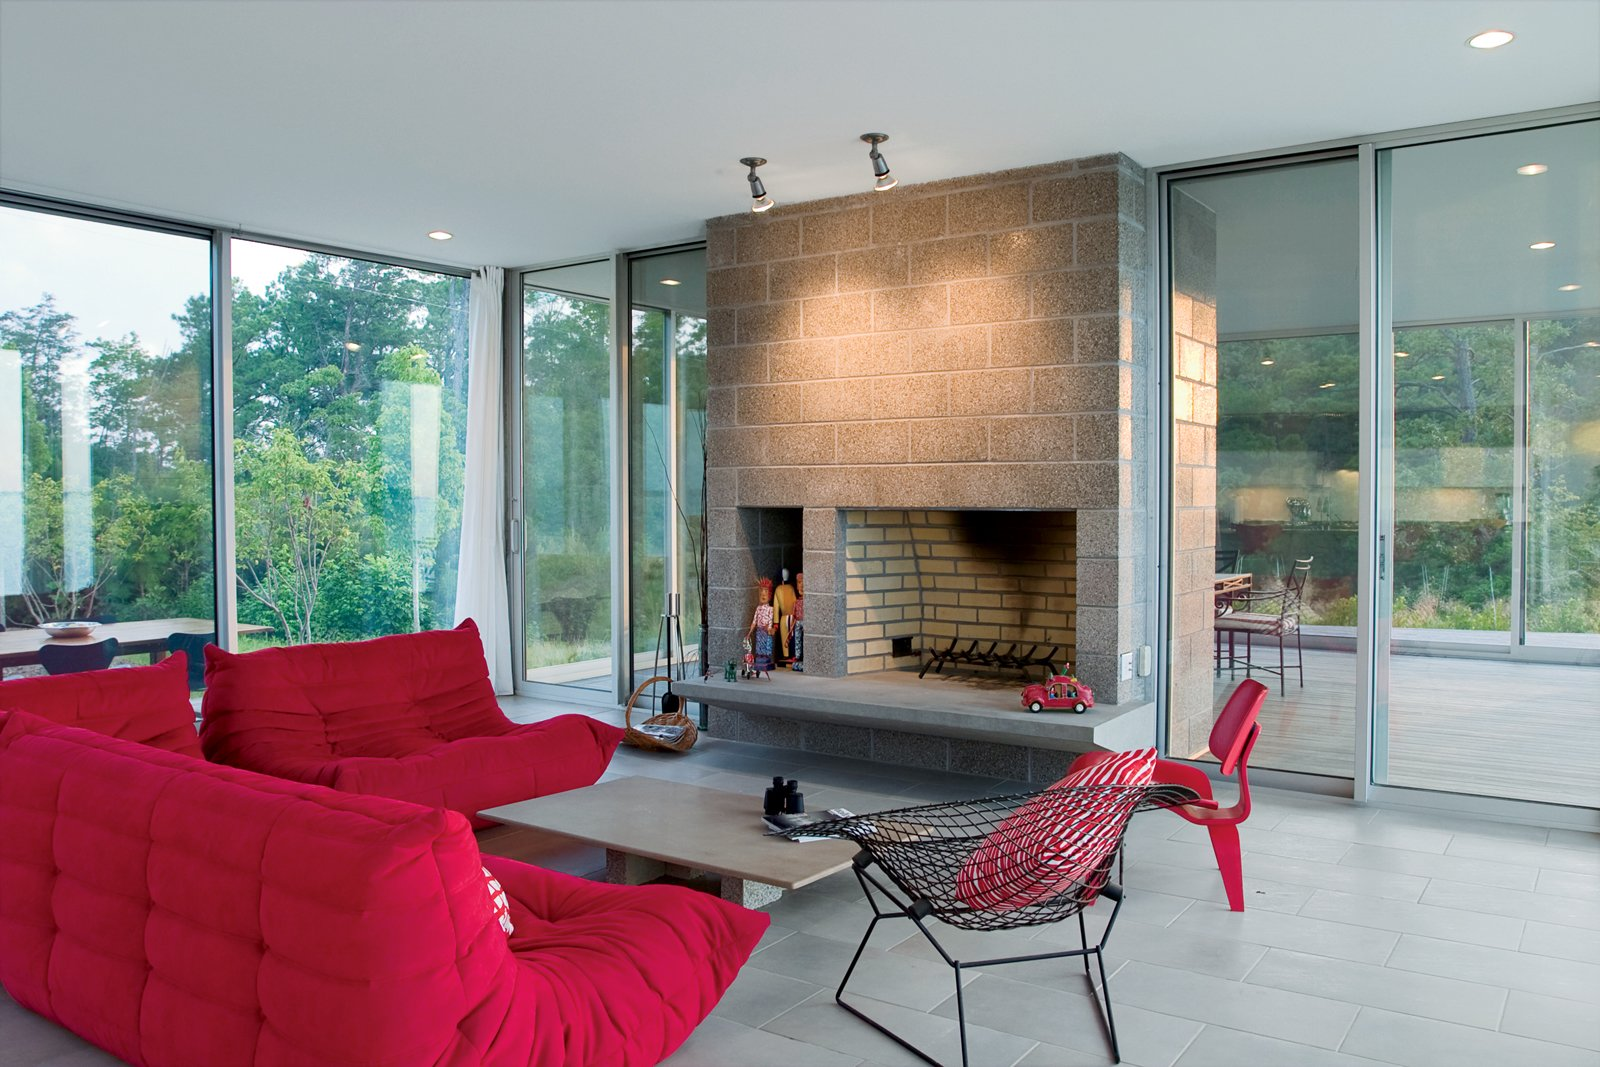 Living, Standard Layout, Wood Burning, Chair, Ceramic Tile, Sofa, Ceiling, and Coffee Tables Magenta Togo sofas by Ligne Roset, a red Eames molded plywood chair, and wire Bertoia Diamond chair provide seating around the hearth.  Best Living Ceramic Tile Chair Photos from Row House